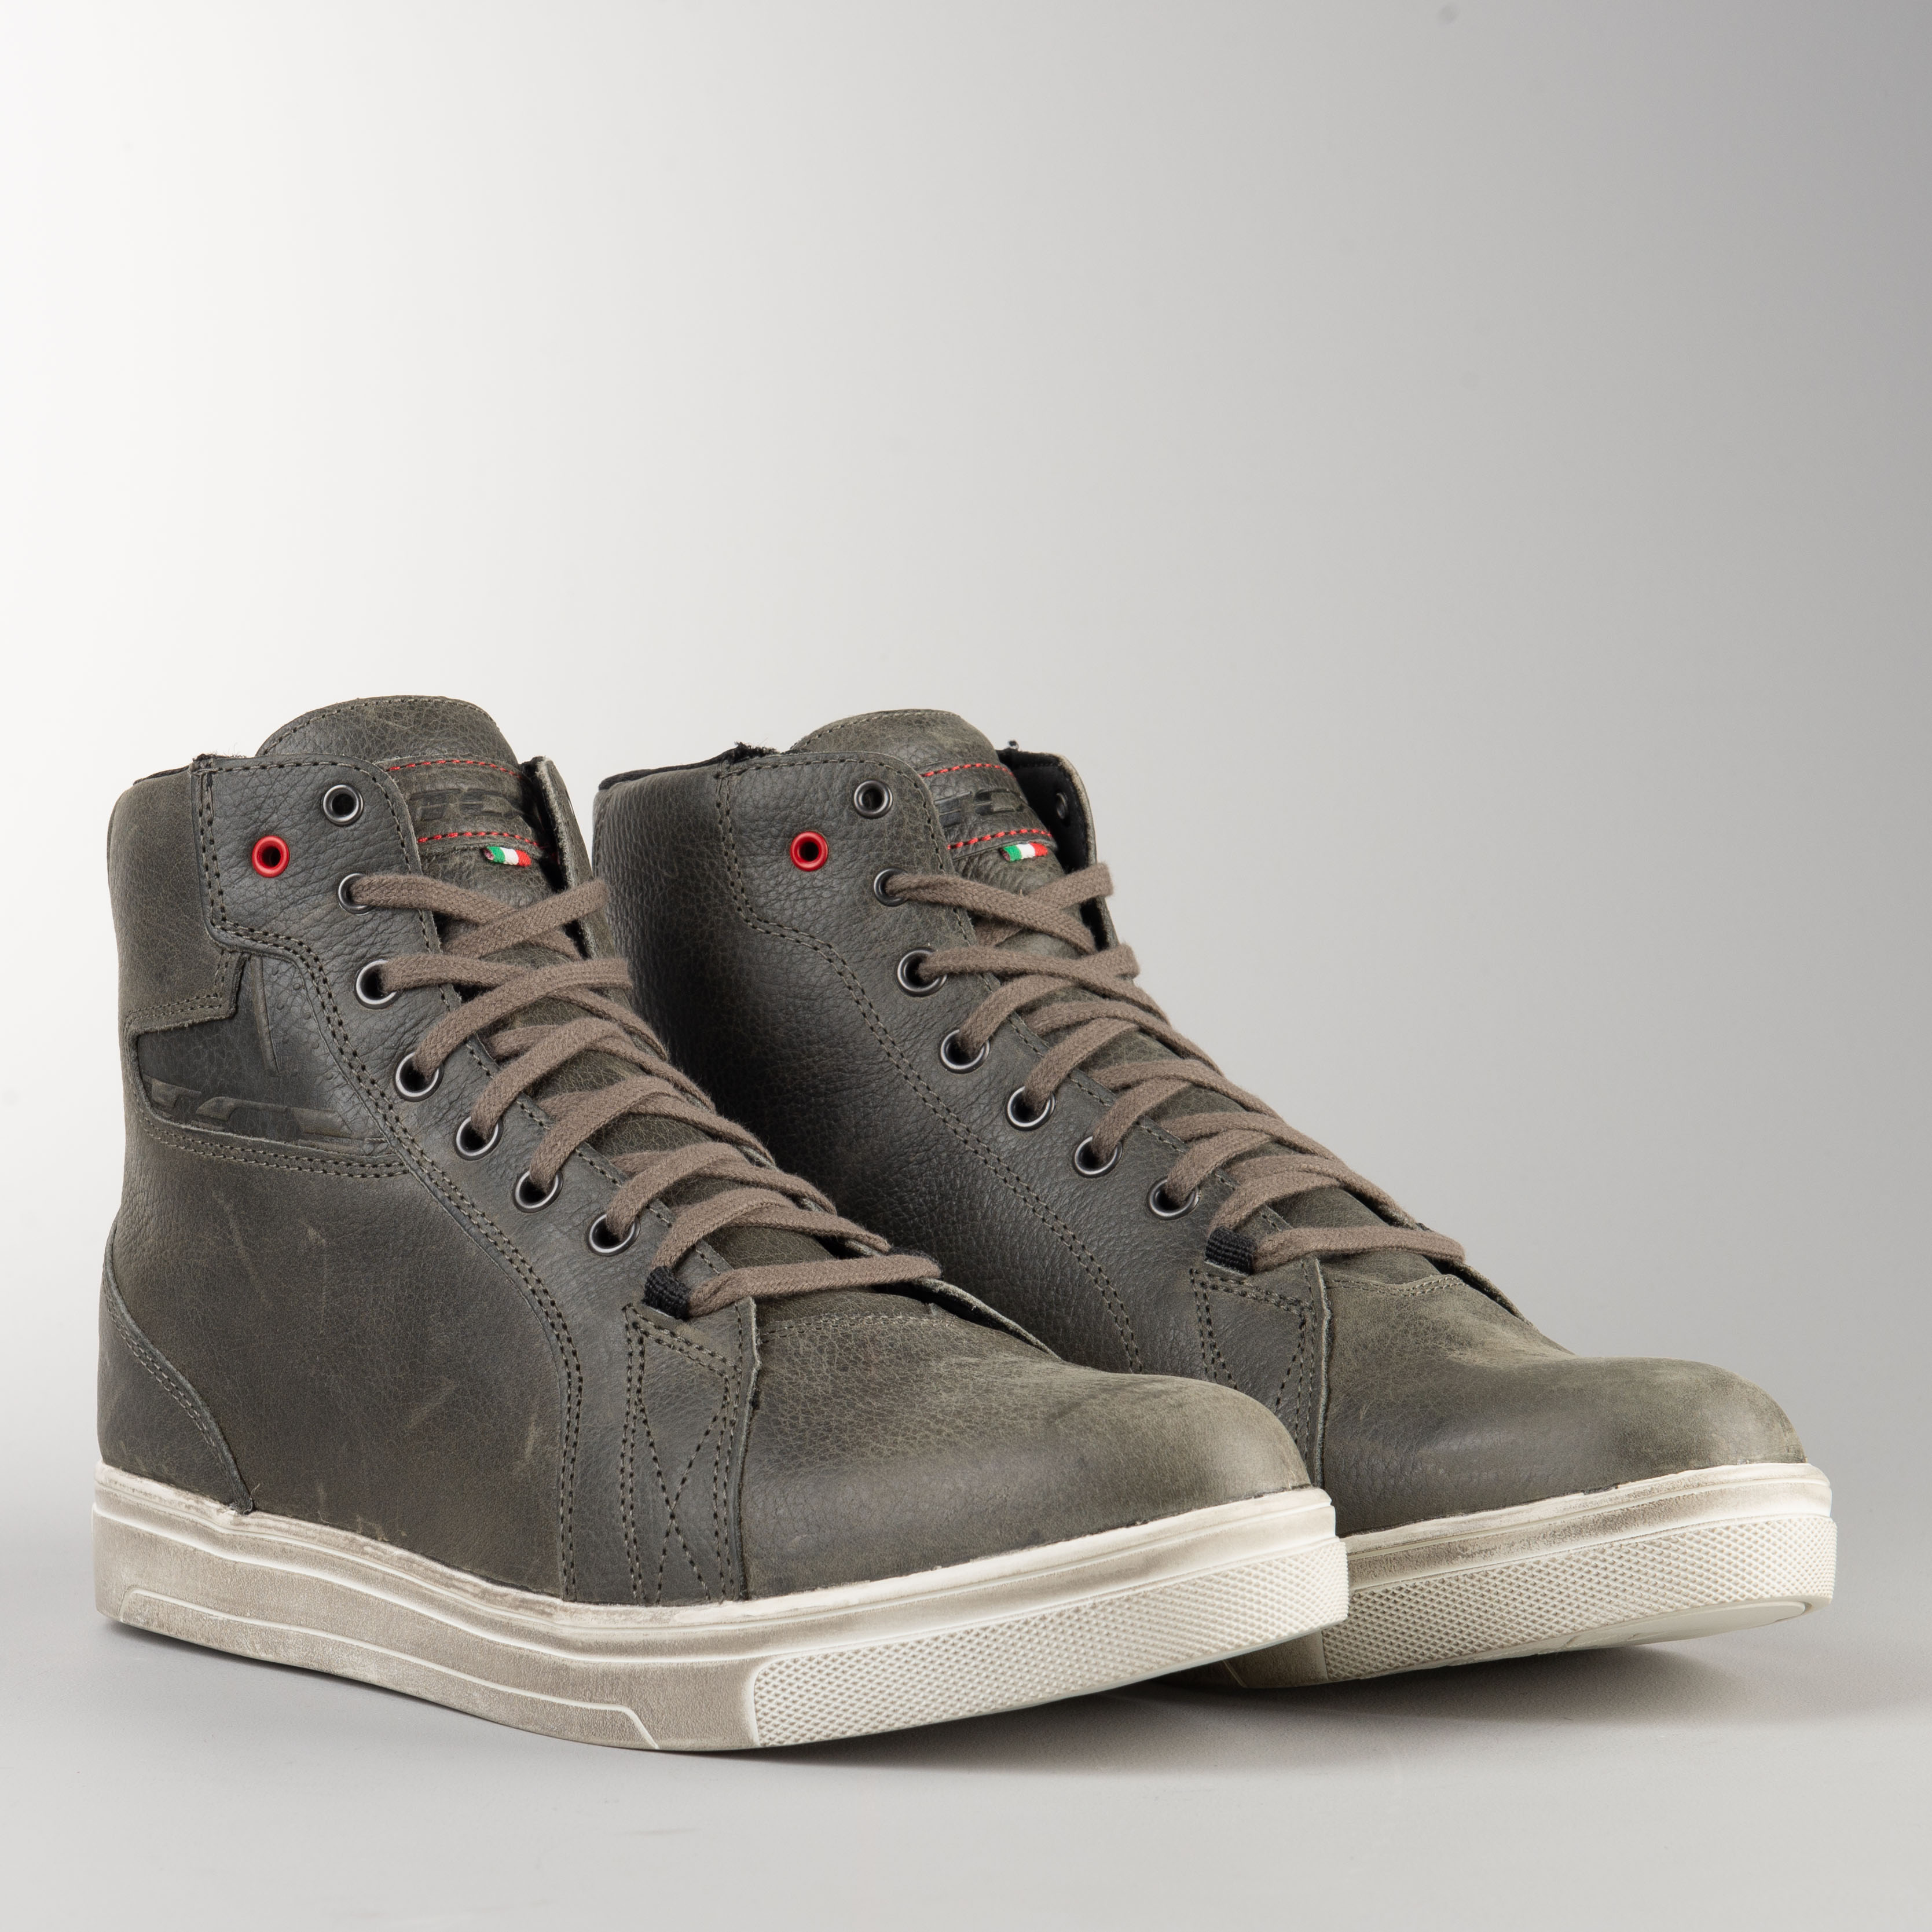 TCX Motorcycle boots STREET ACE WP Grey